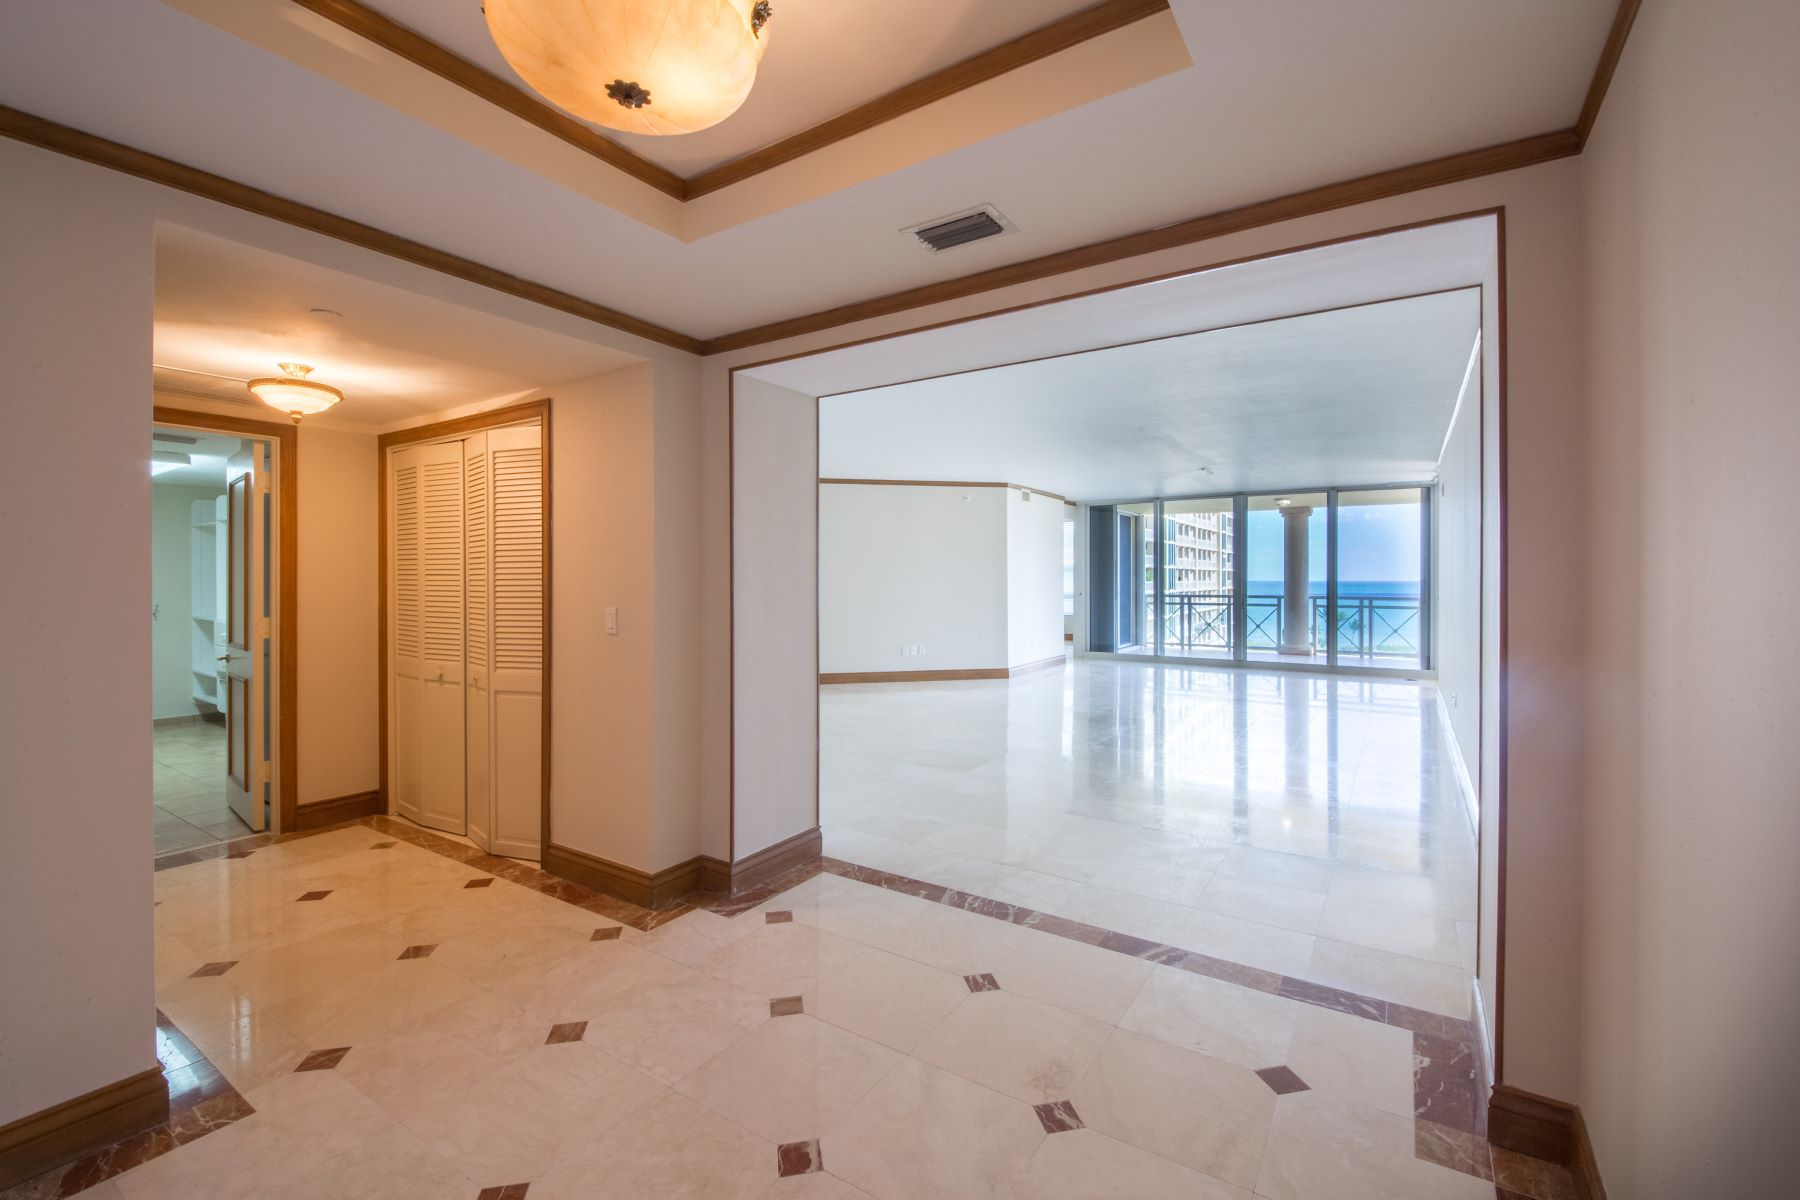 Additional photo for property listing at 445 Grand Bay Dr 704, Key Biscayne, Florida 33149 Vereinigte Staaten